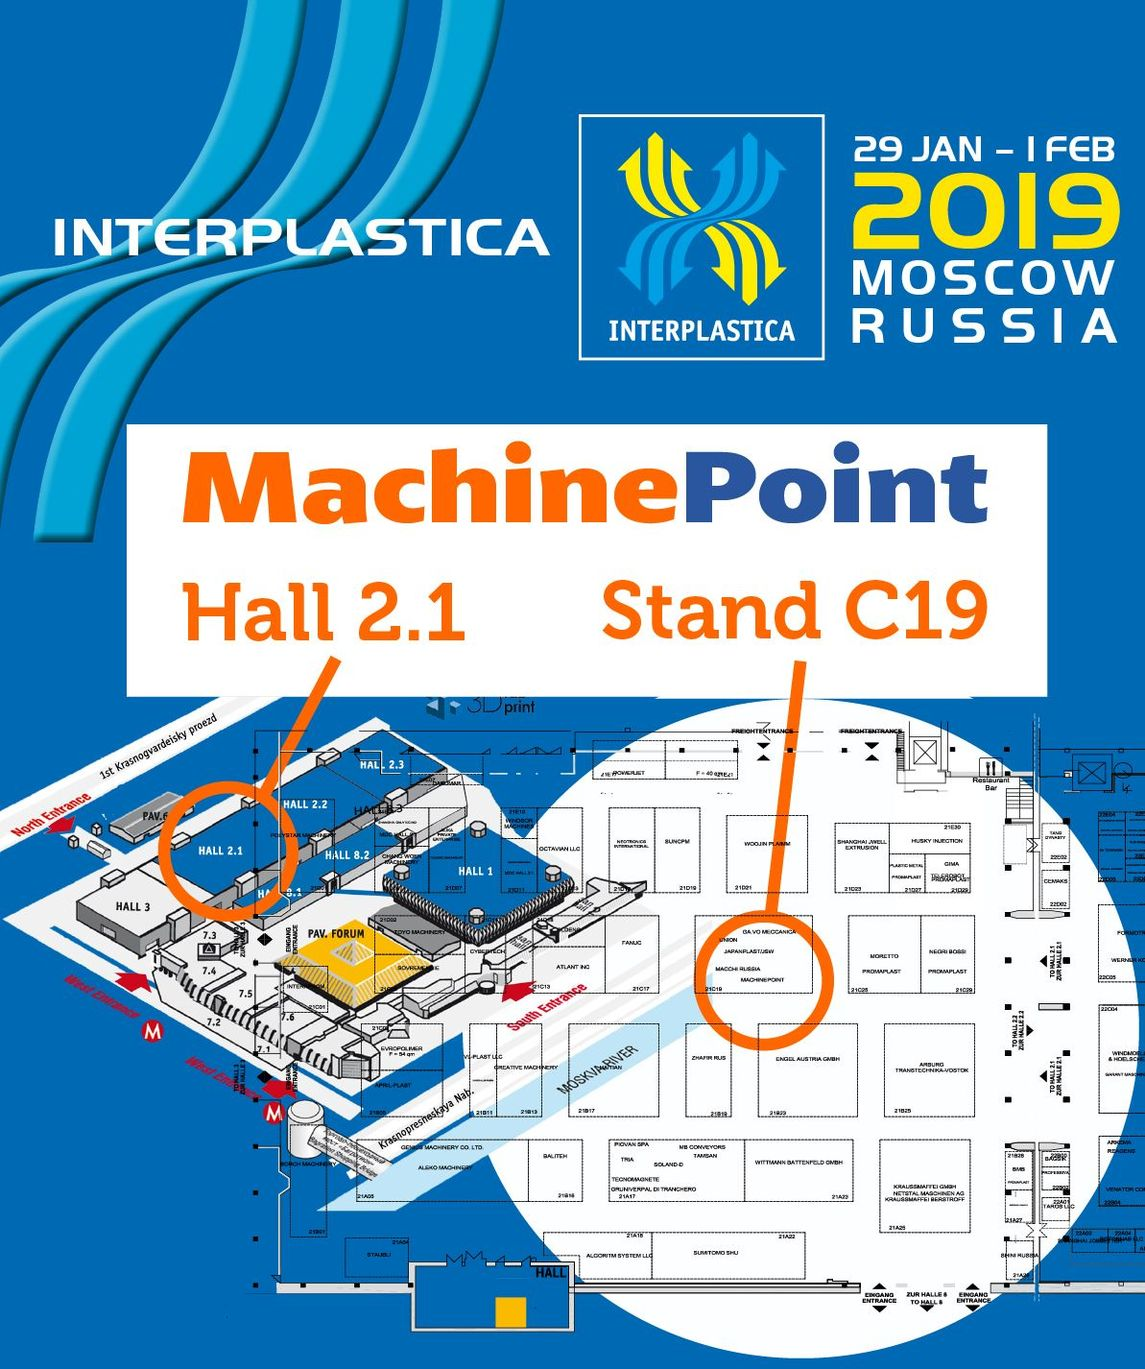 Interplastica 2019 MachinePoint